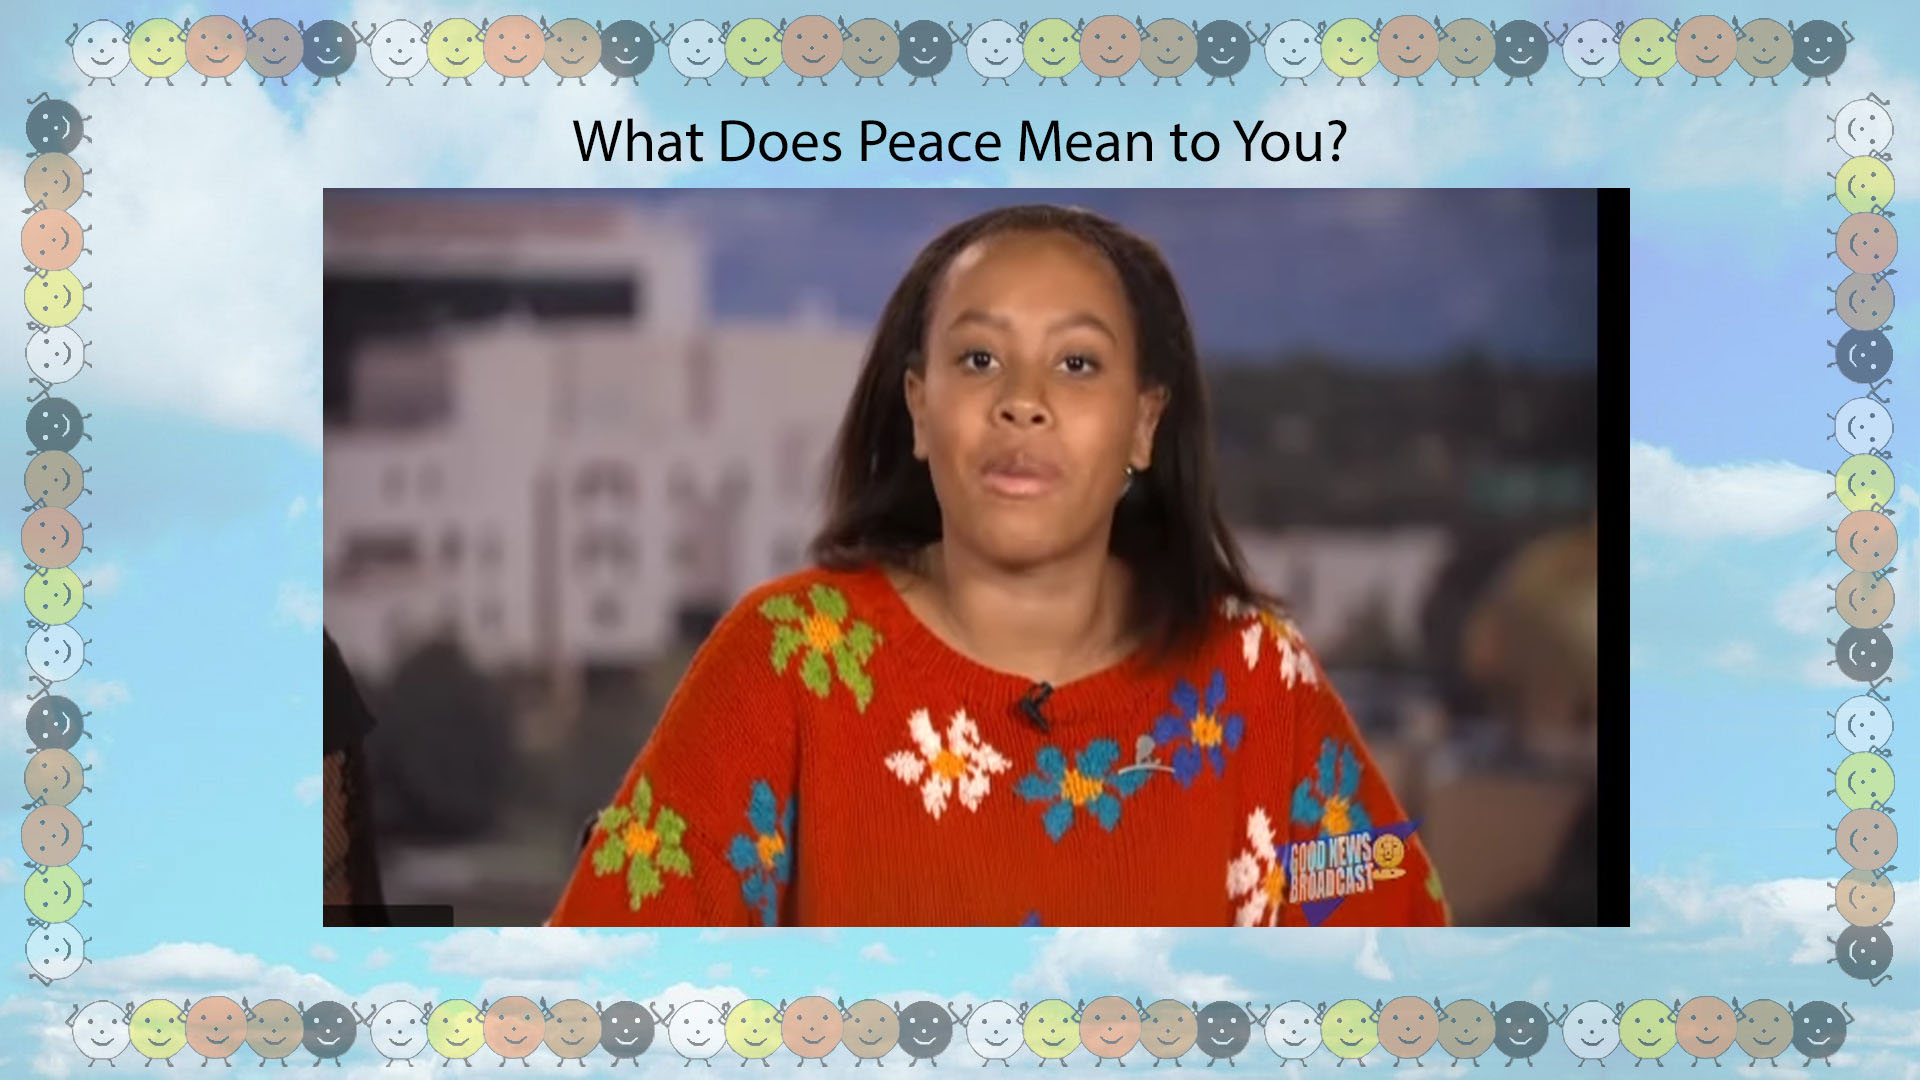 What does Peace mean to Courtney?